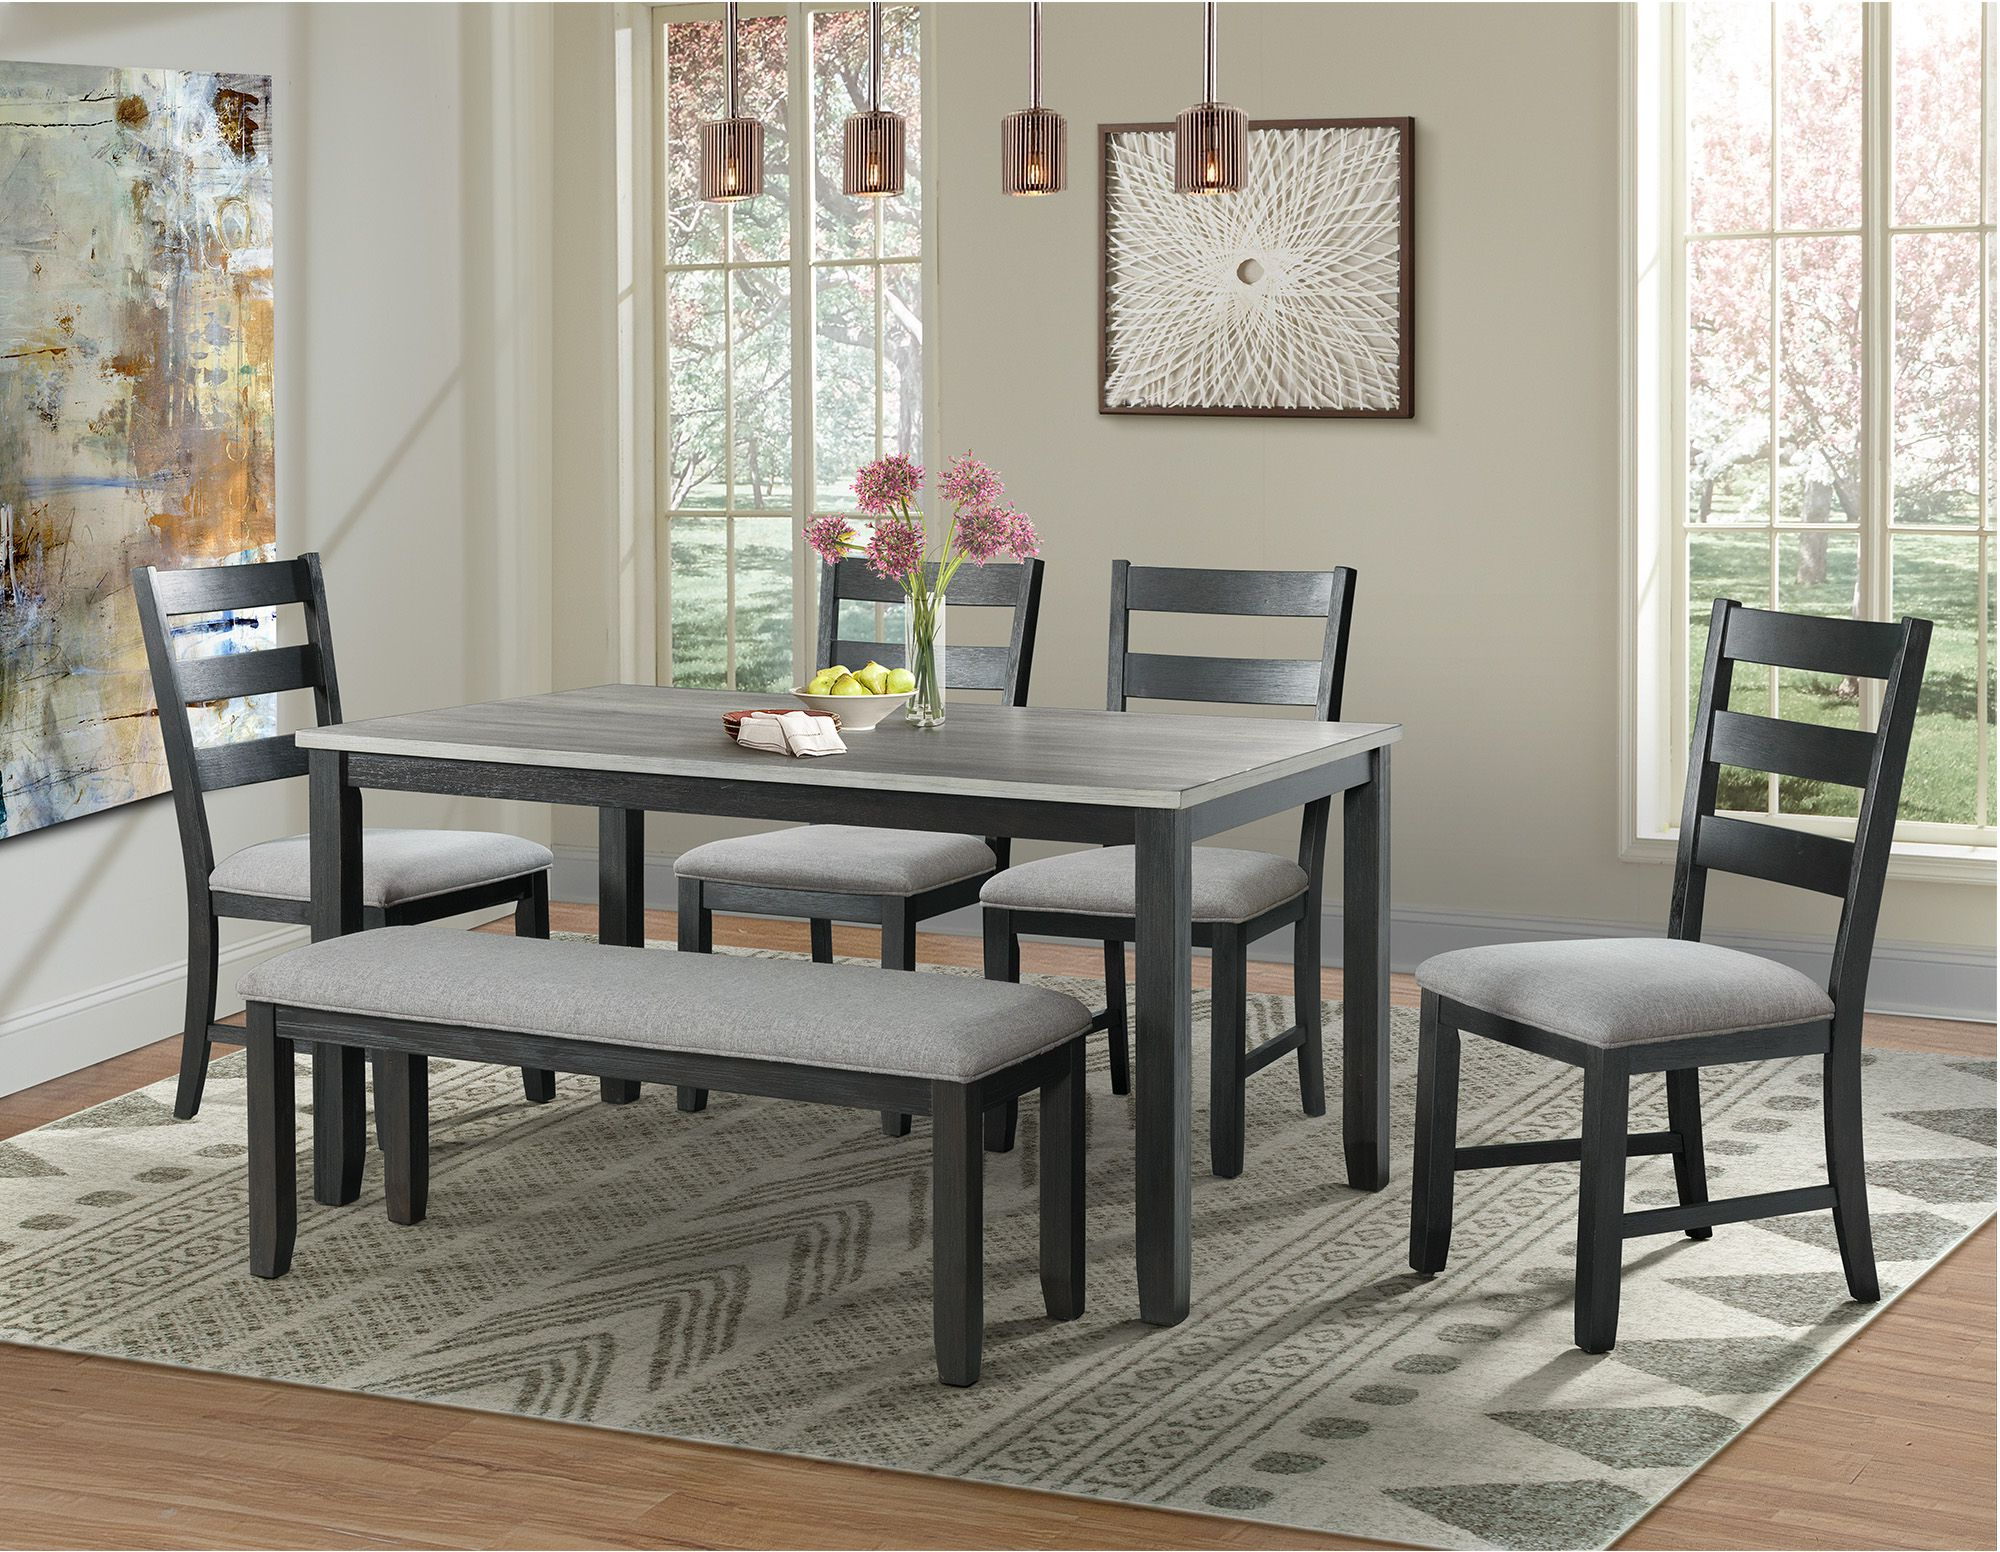 Kona Gray And Black 6 Piece Dining Room Set From Elements Furniture Pertaining To Well Liked Kinsler 3 Piece Bistro Sets (View 19 of 25)